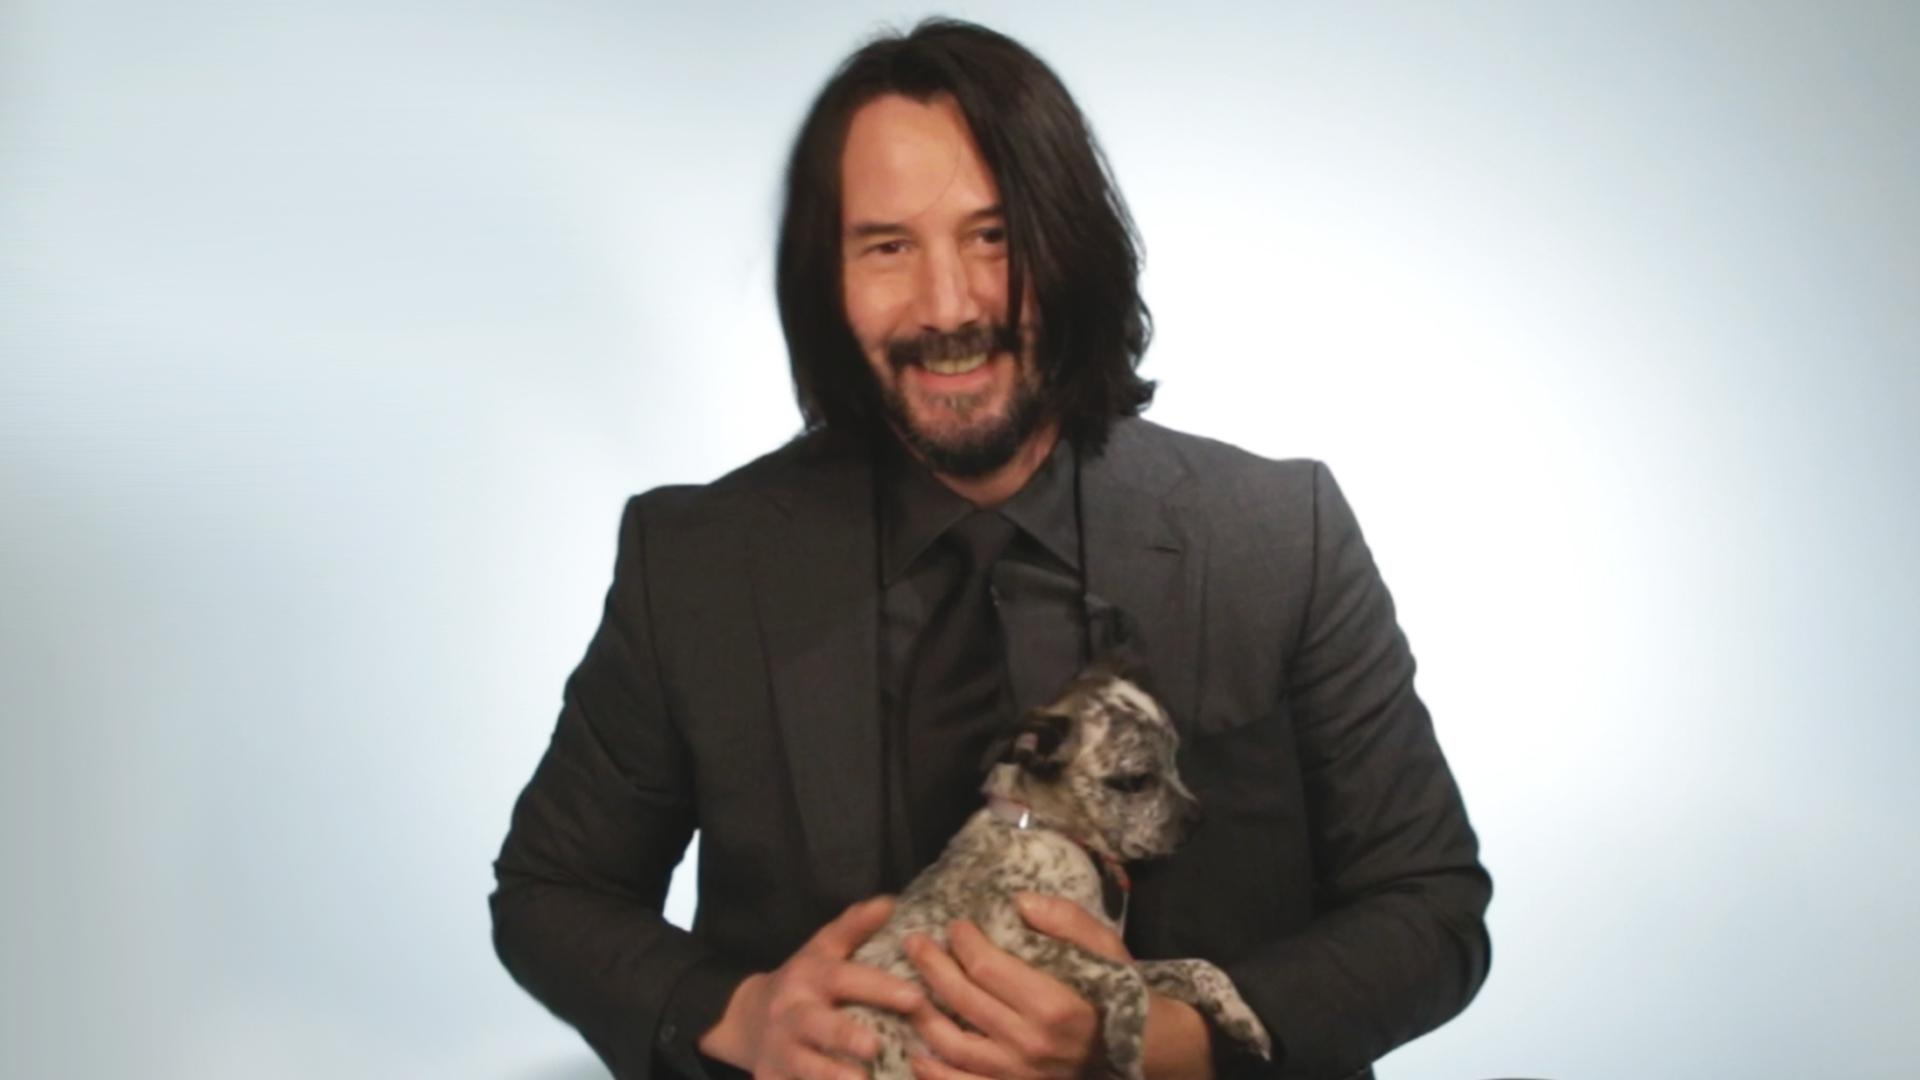 Watch: BuzzFeed Video - Keanu Reeves Plays With Puppies While Answering Fan Questions